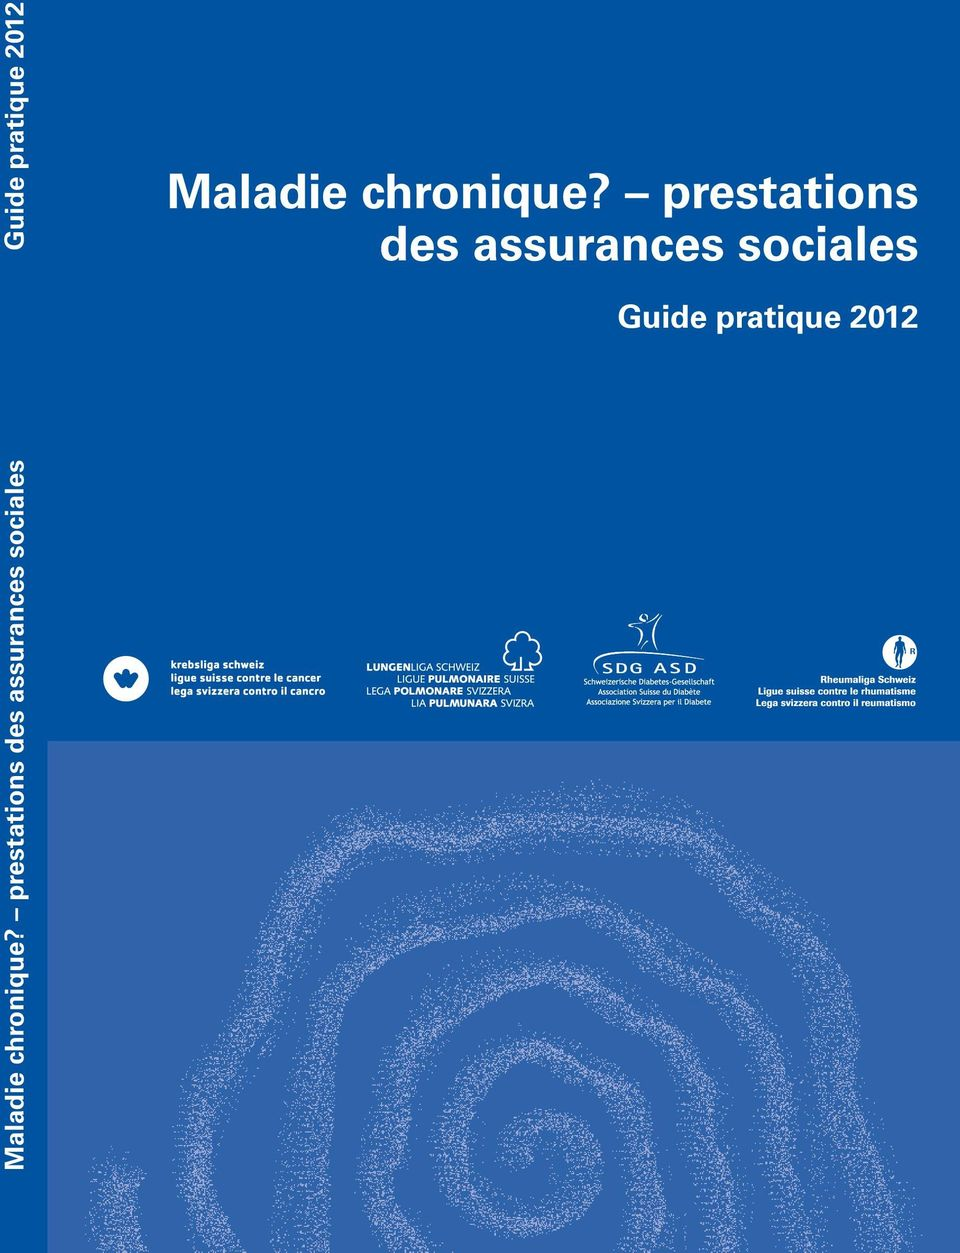 Guide pratique 2012   Guide pratique